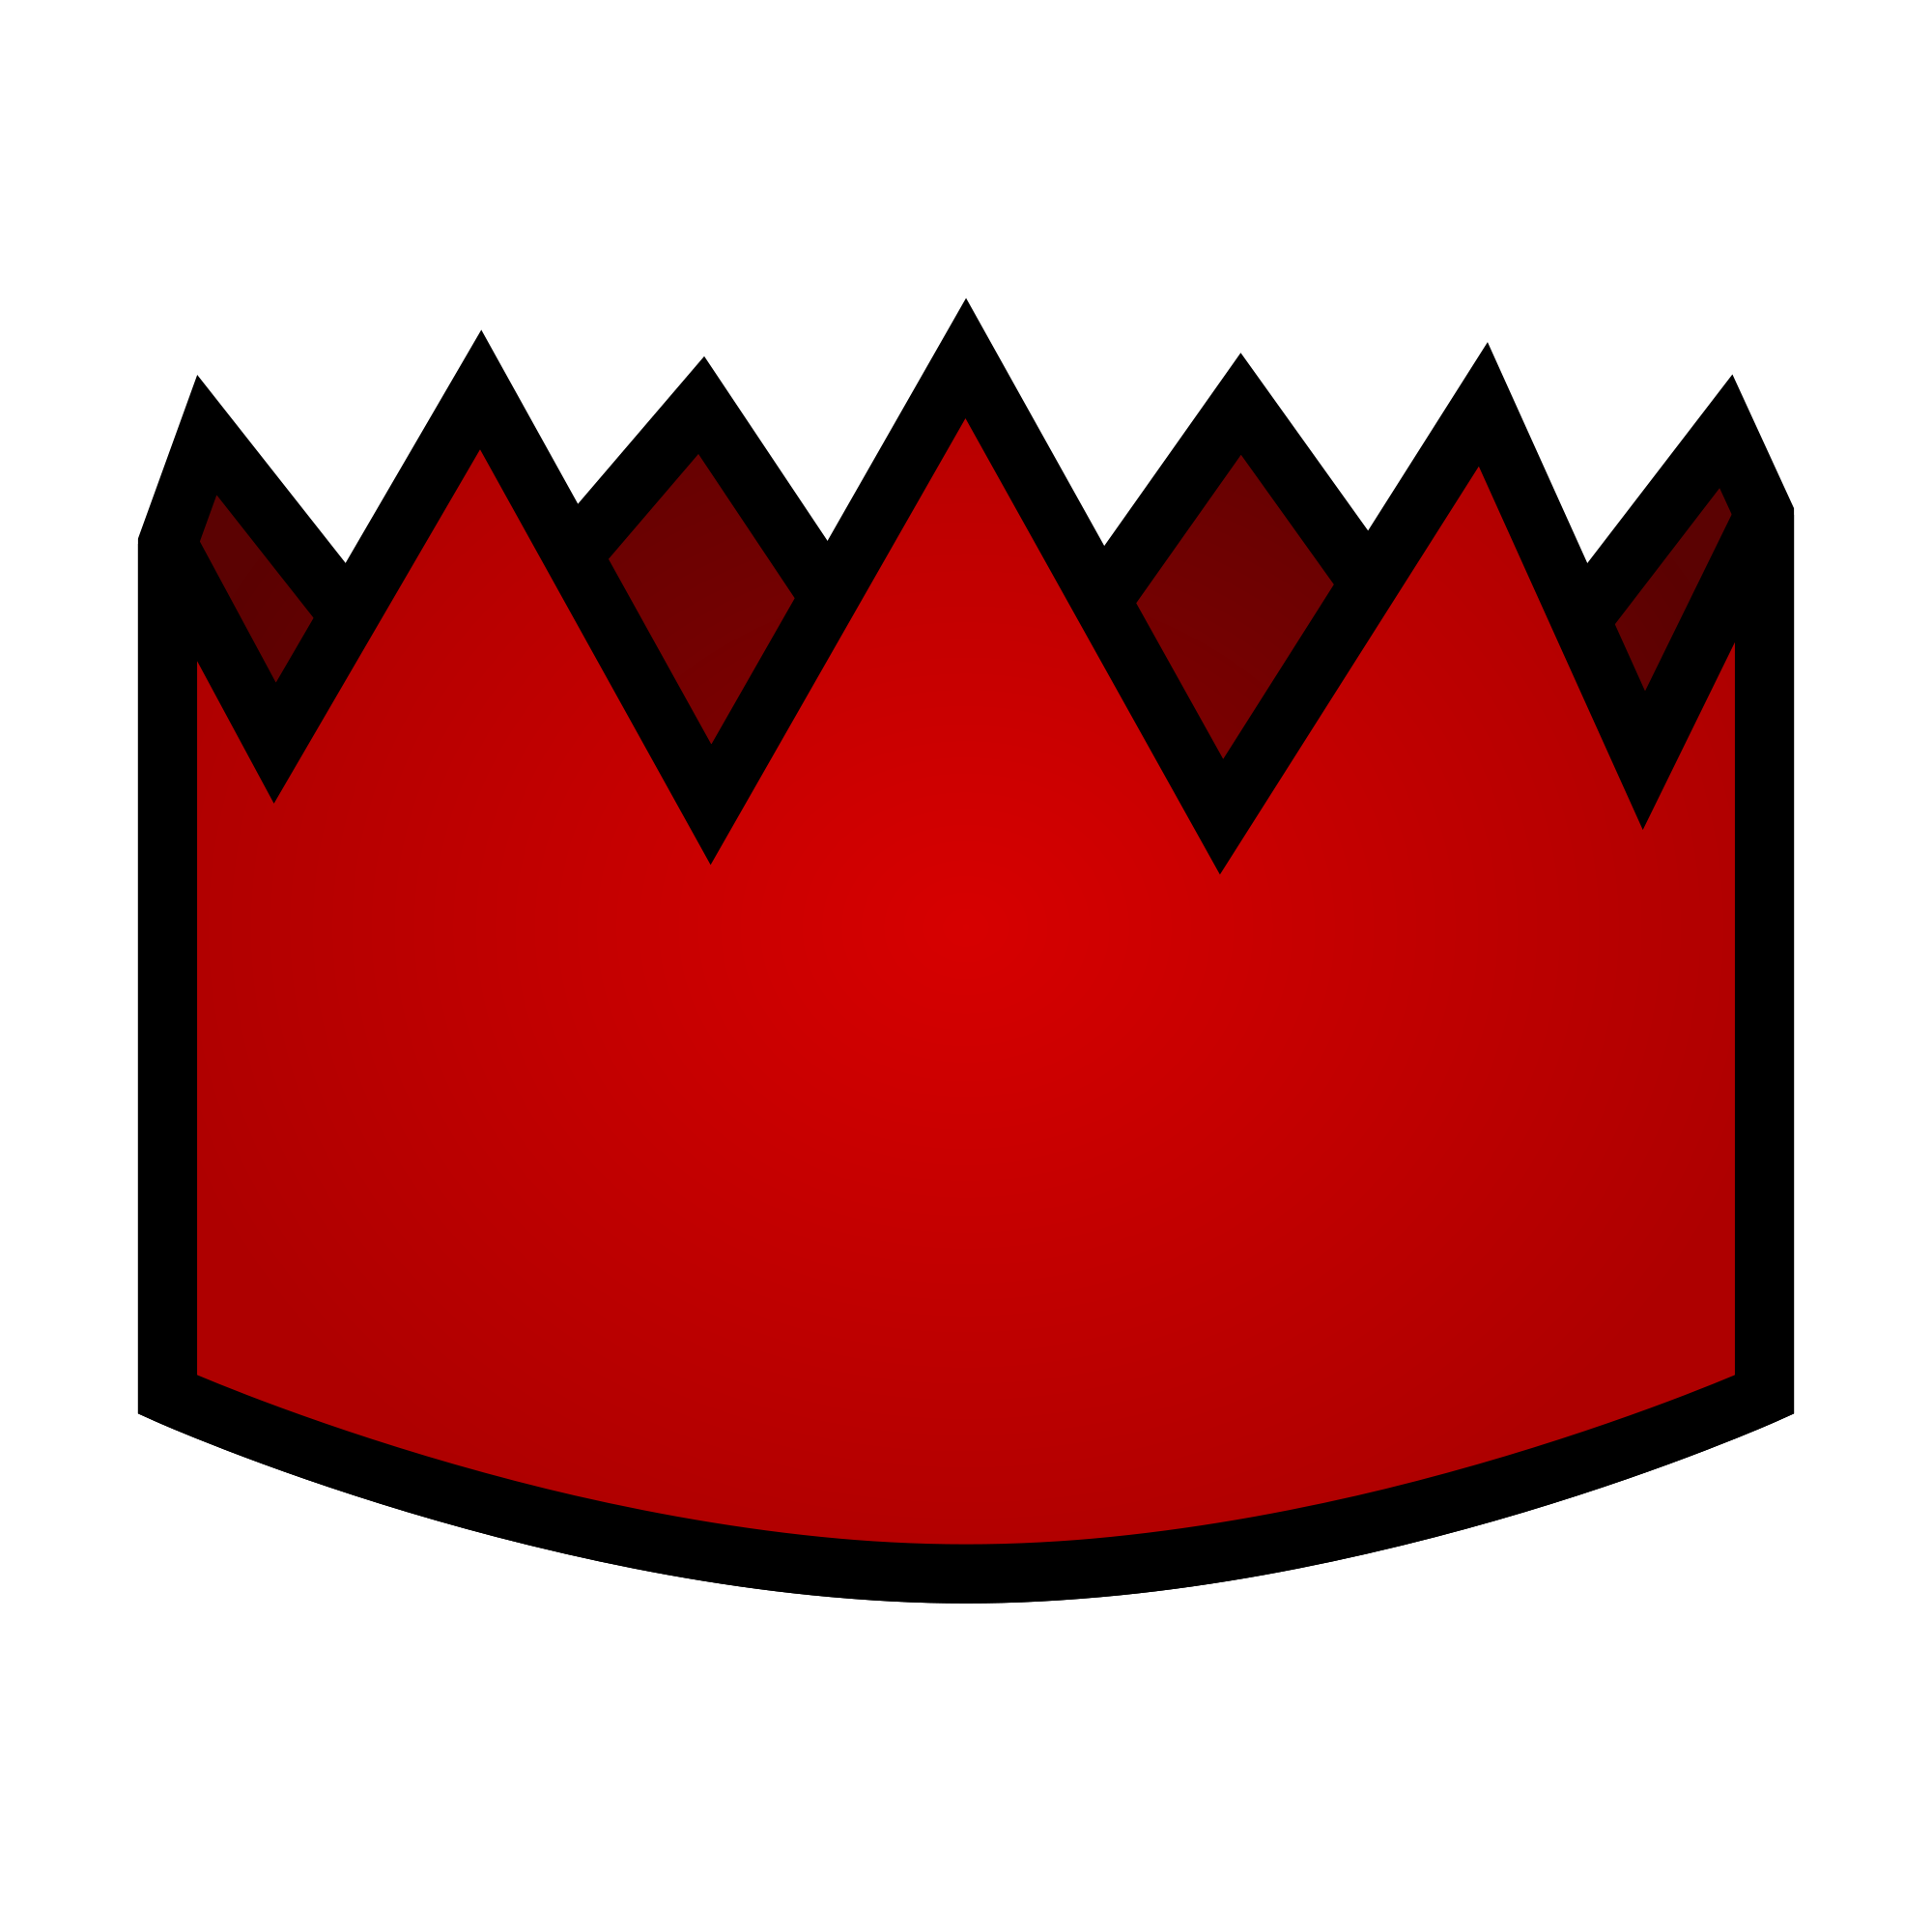 2000x2000 Filered Party Hat.svg